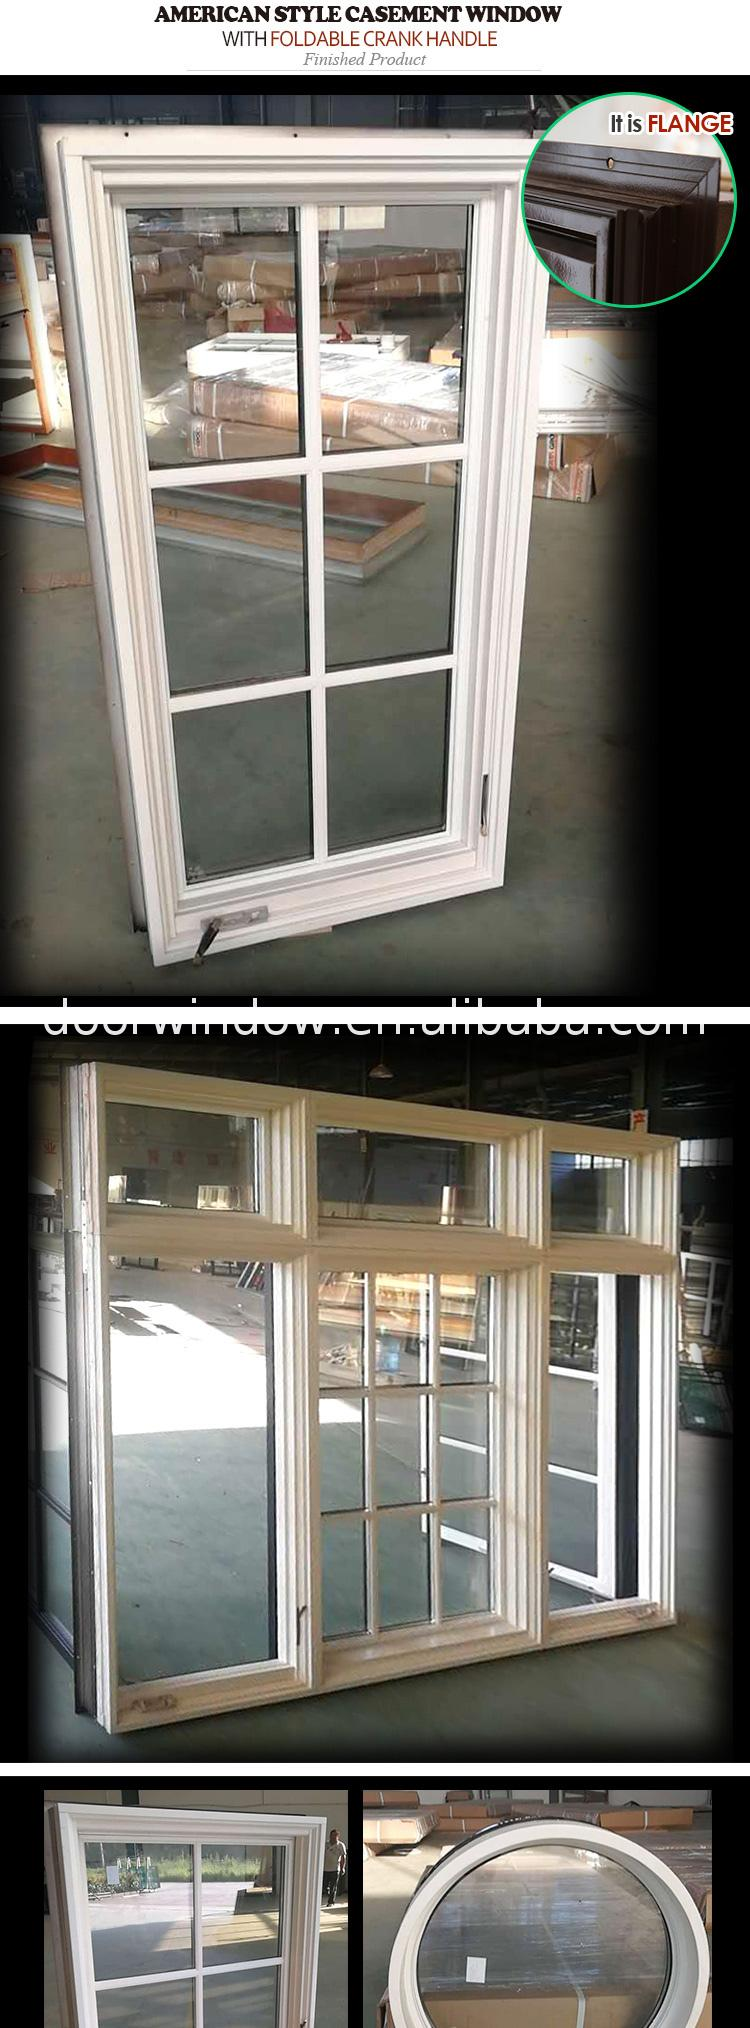 The newest white color windows casement window